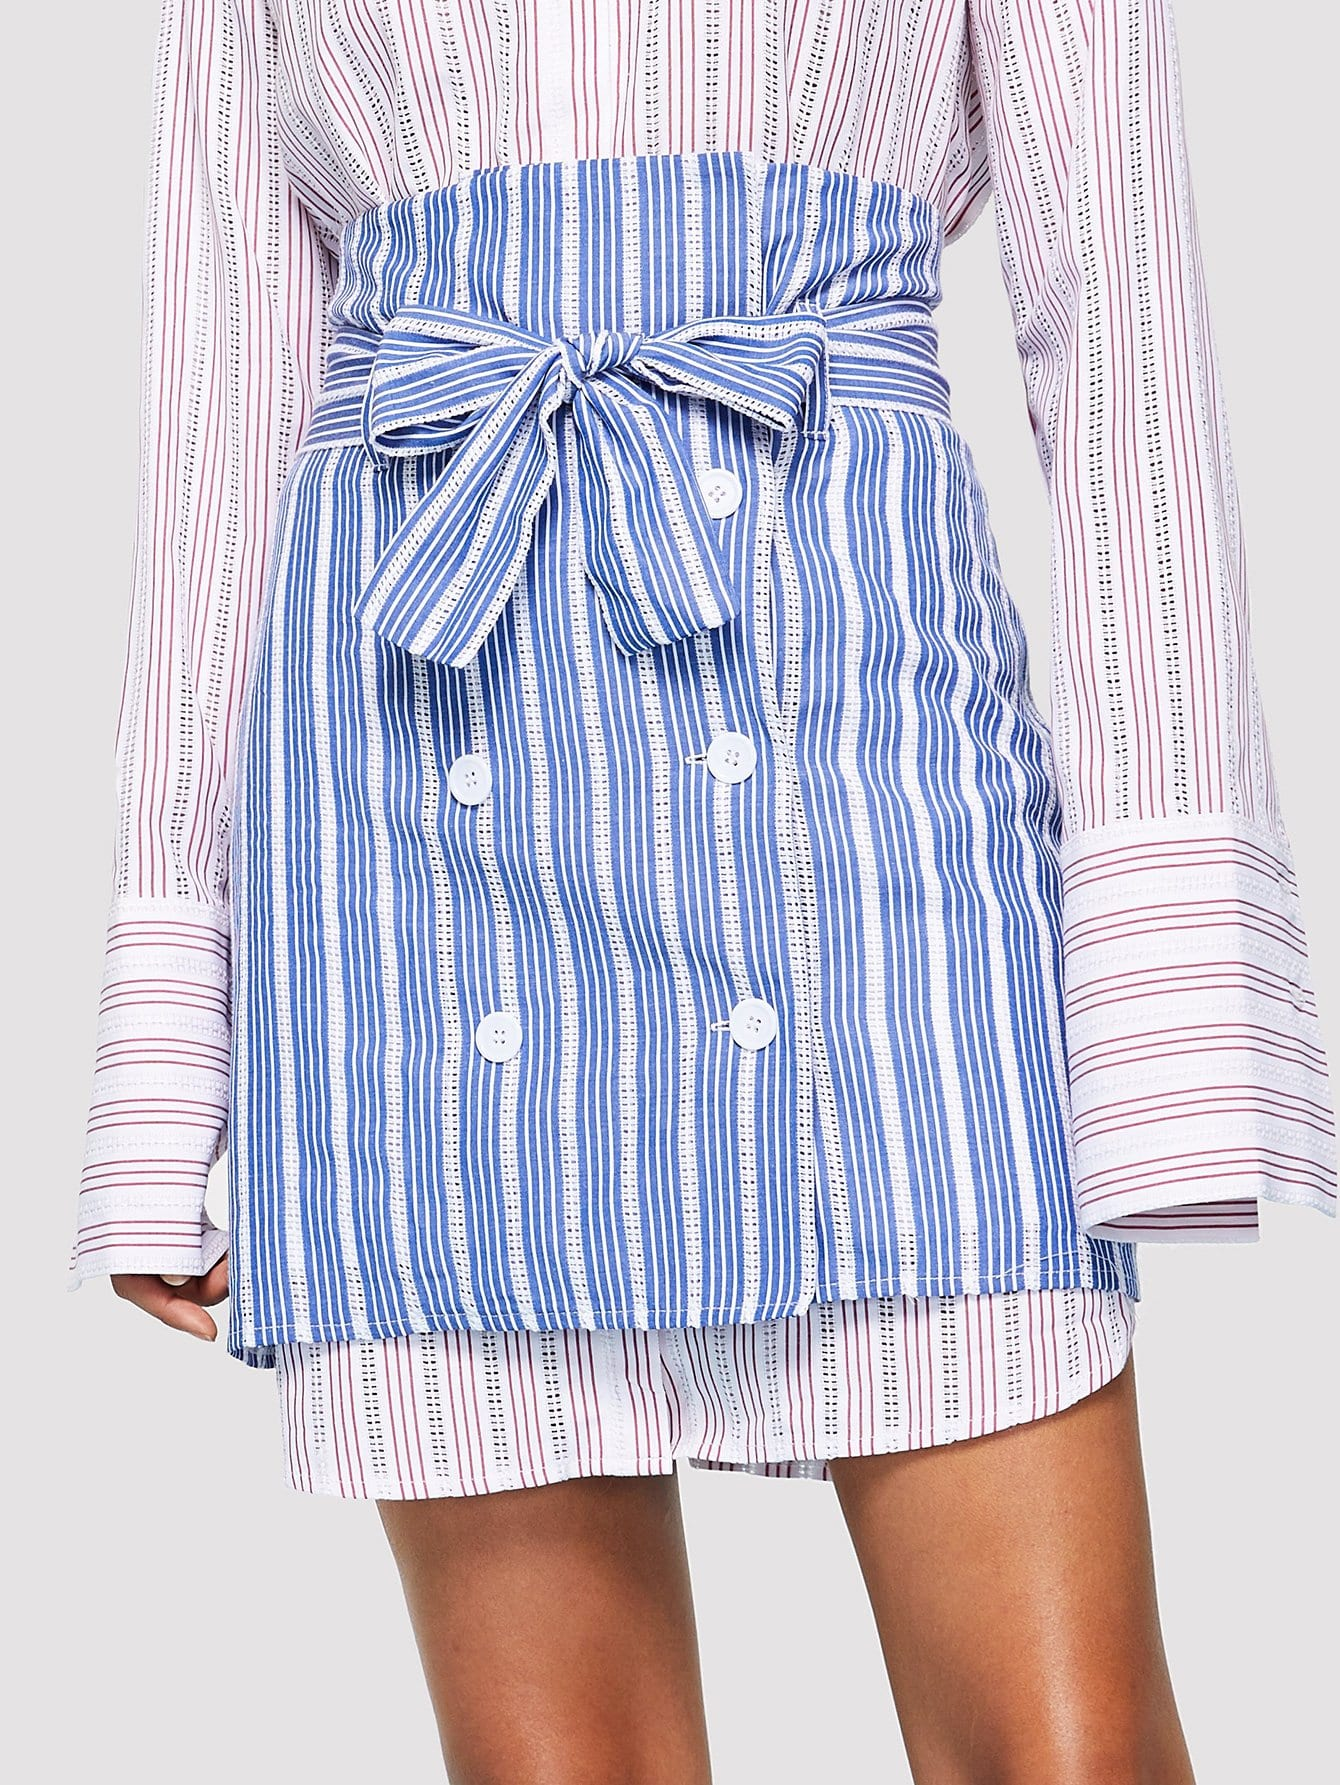 Double Breasted Striped Skirt with Belt double breasted pencil skirt